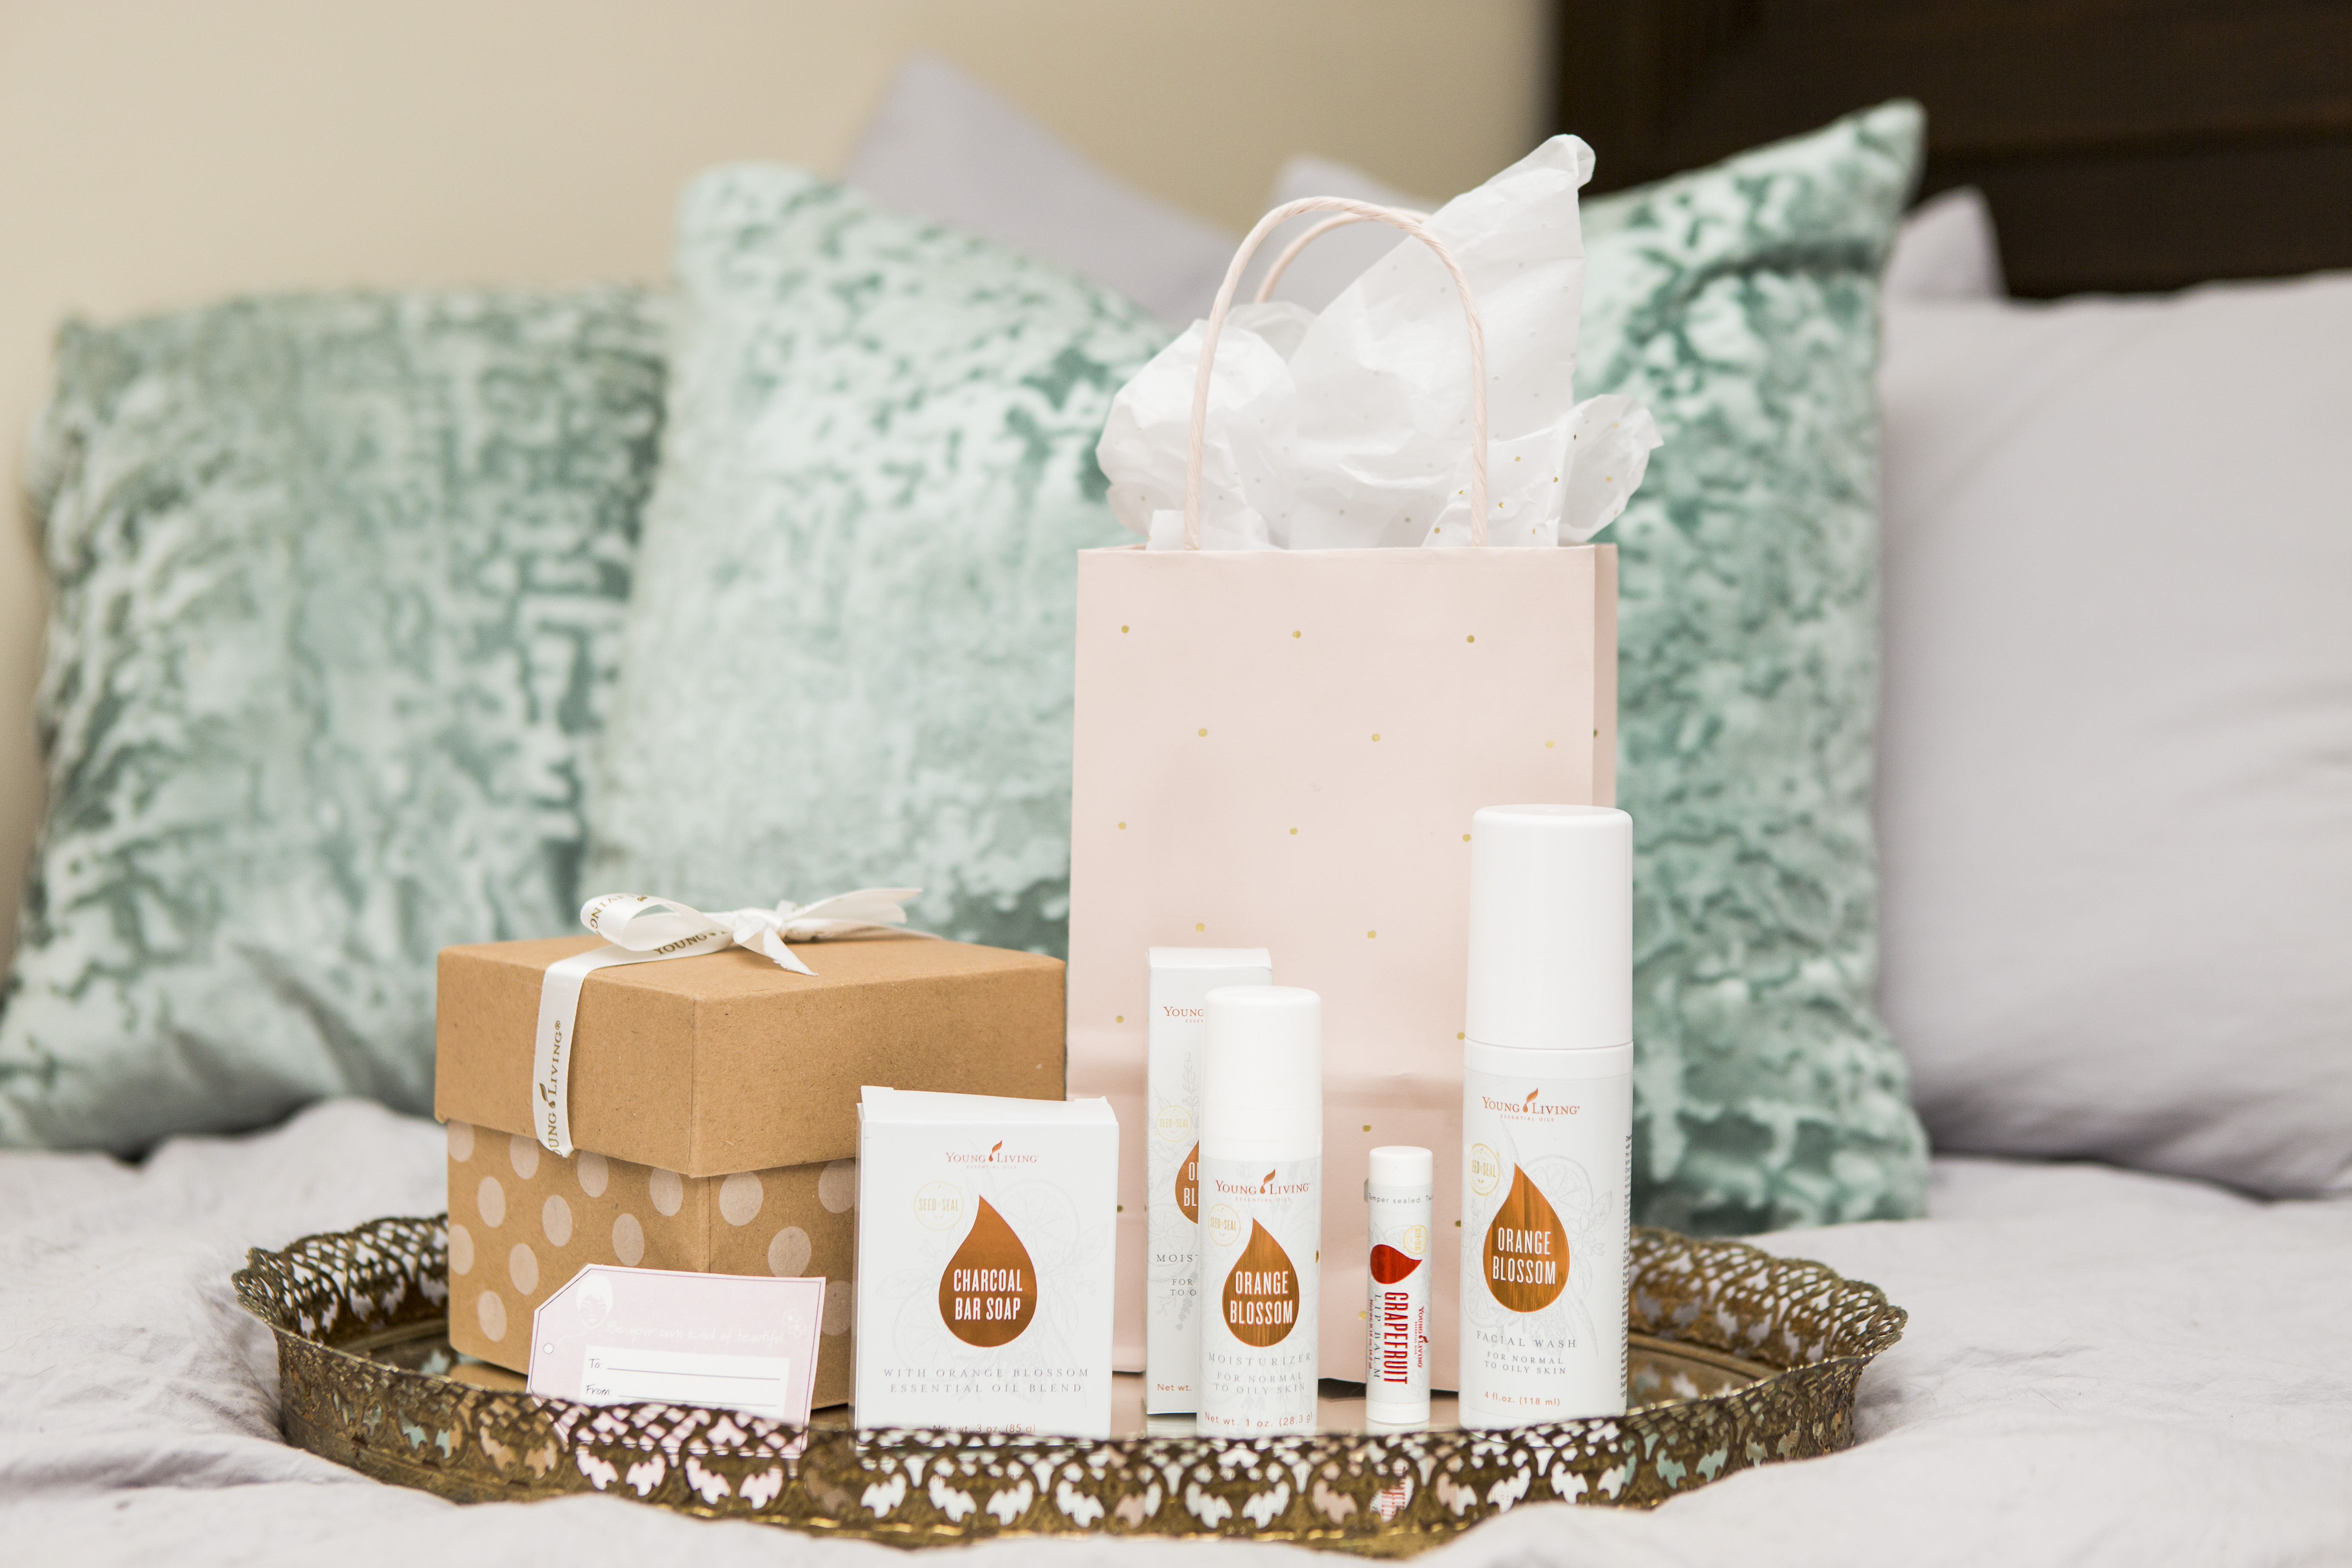 ageless beauty, holiday gift giving